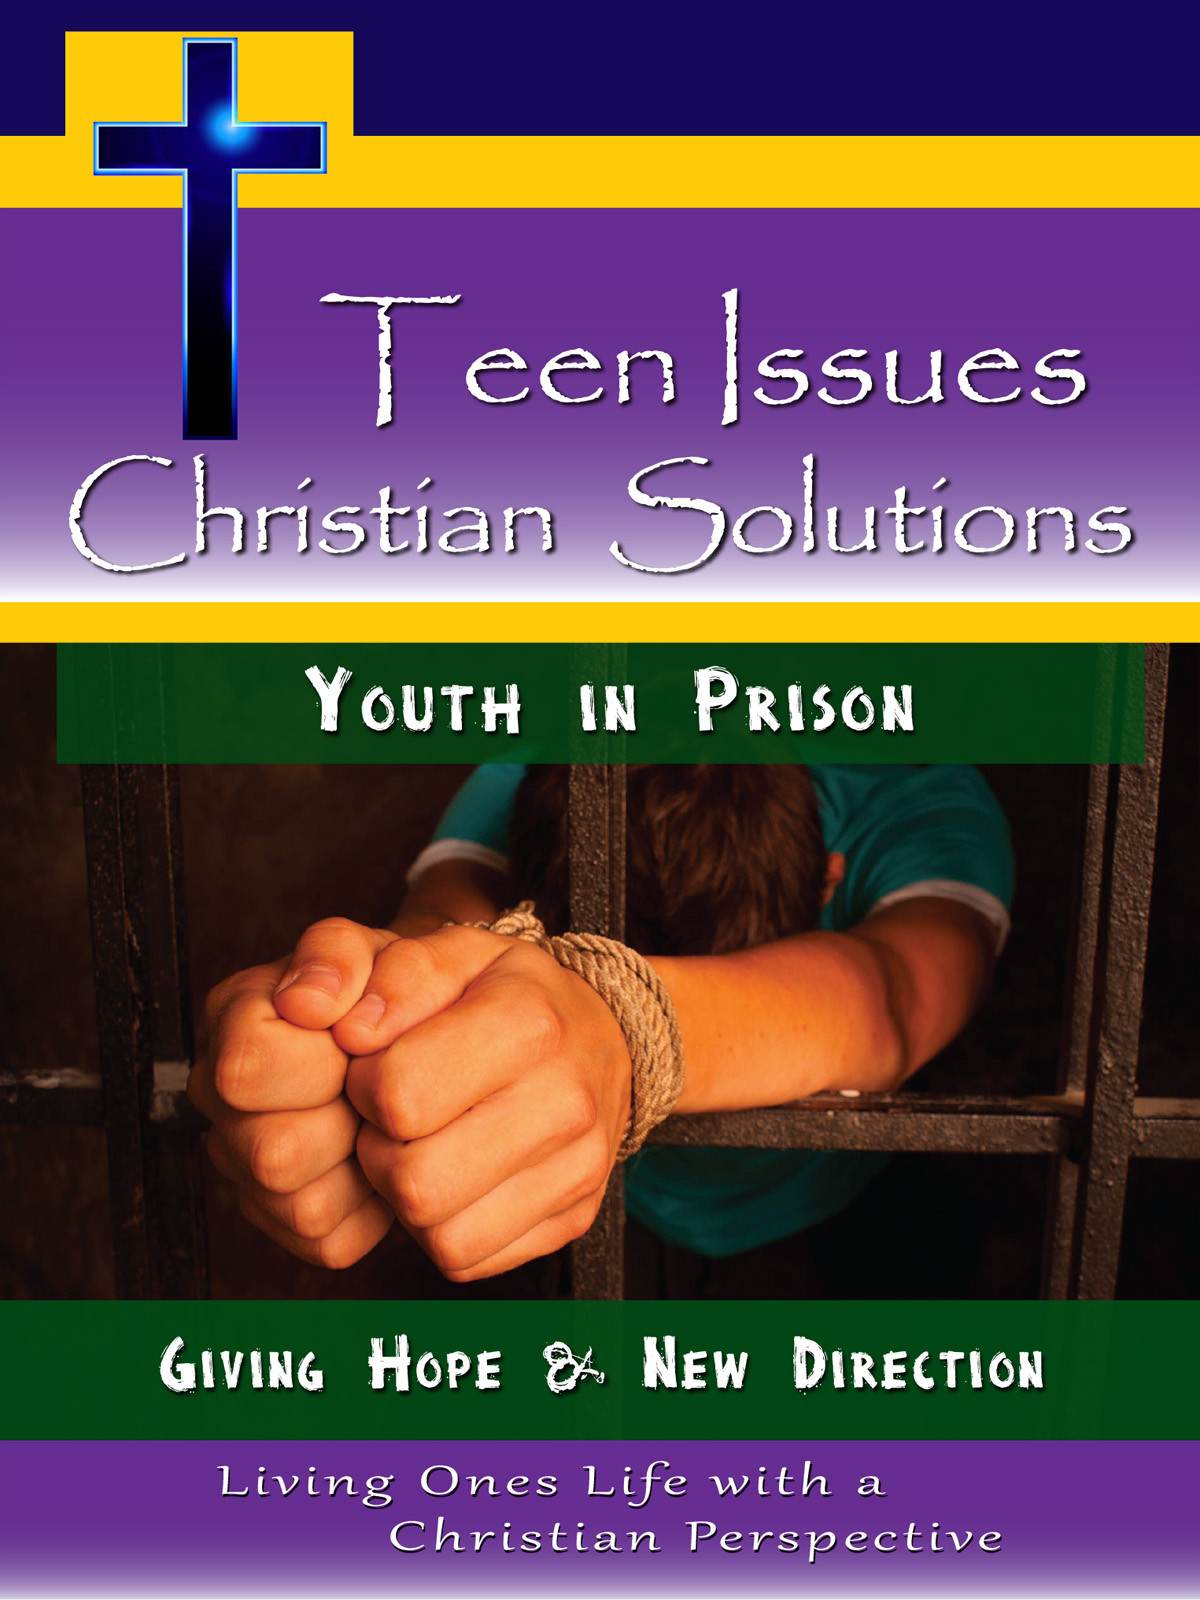 CH9994 - Youth in Prison Giving Hope & New Direction